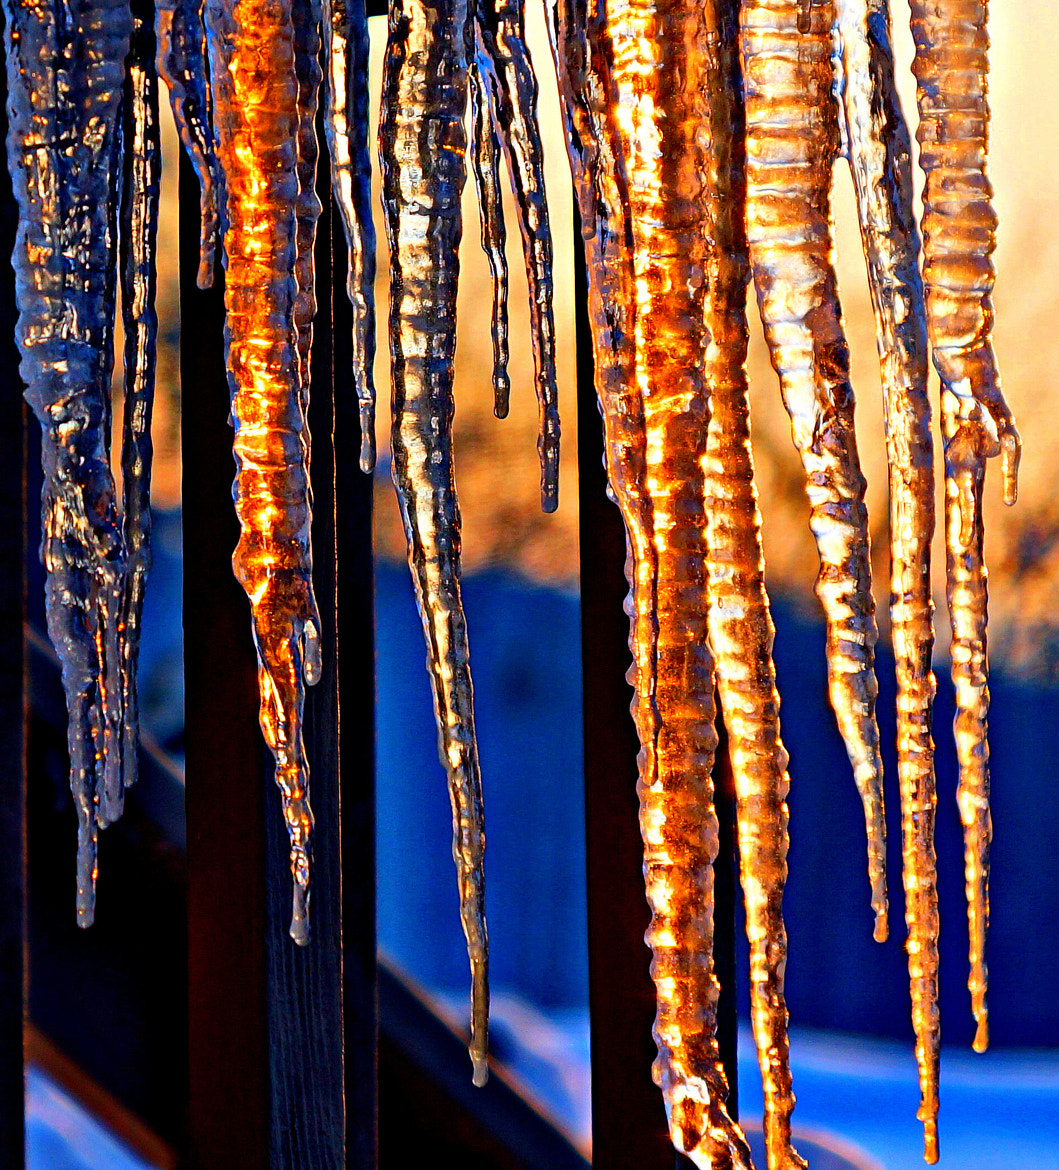 Photograph Sunset Flavored Icicles by Imageination on 500px